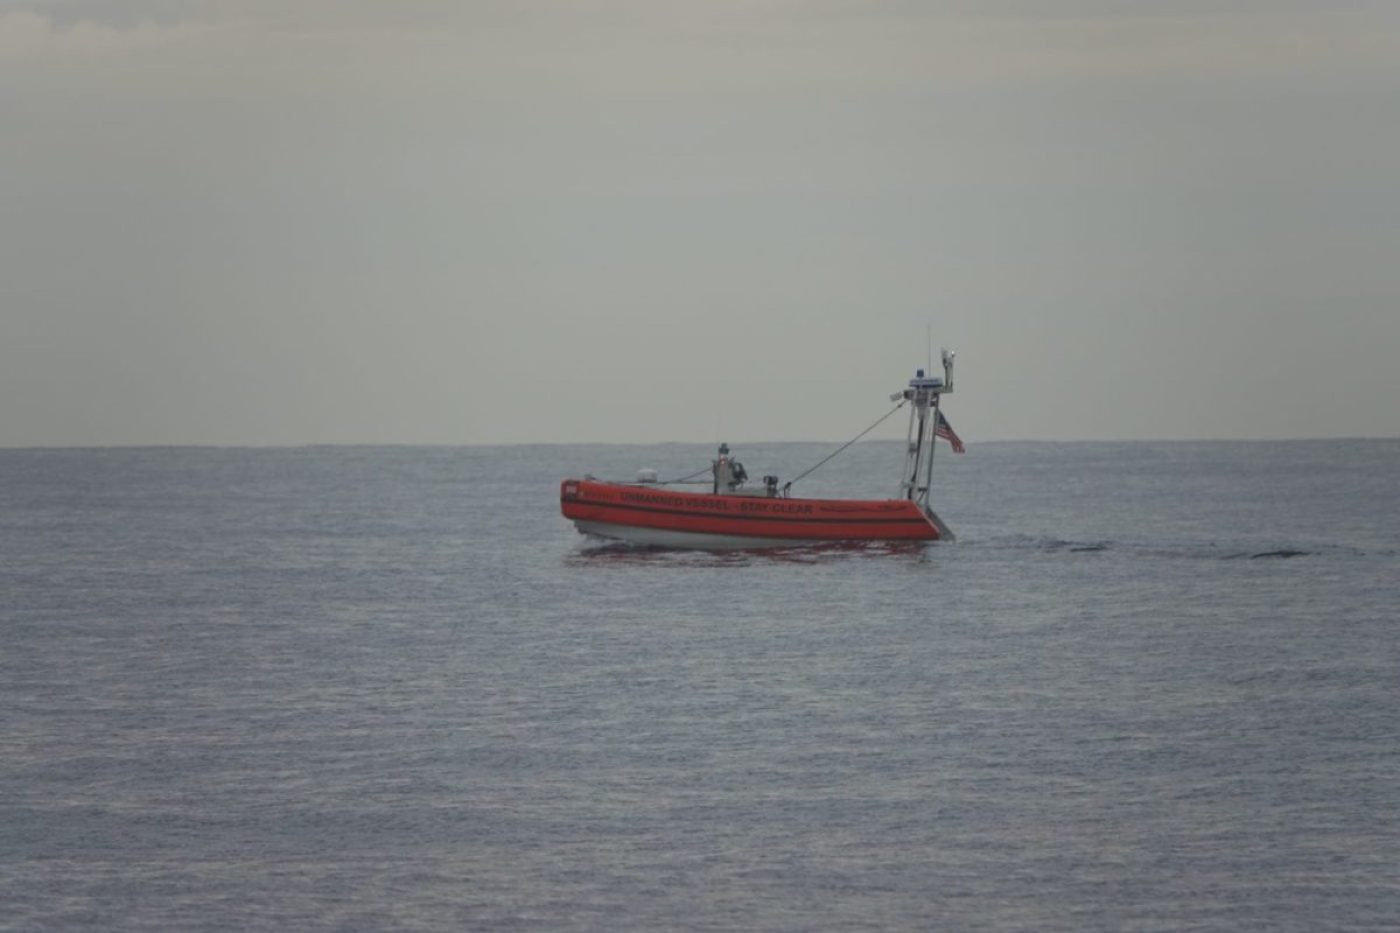 A Coast Guard prototype unmanned surface vehicle (USV) performs a test off Oahu, Hawaii, Oct. 27, 2020. The test showed ways USVs might support the Coast Guard's many missions around the globe ranging from search and rescue, to law enforcement. (U.S. Coast Guard photo courtesy of the Coast Guard Research and Development Center/Released)